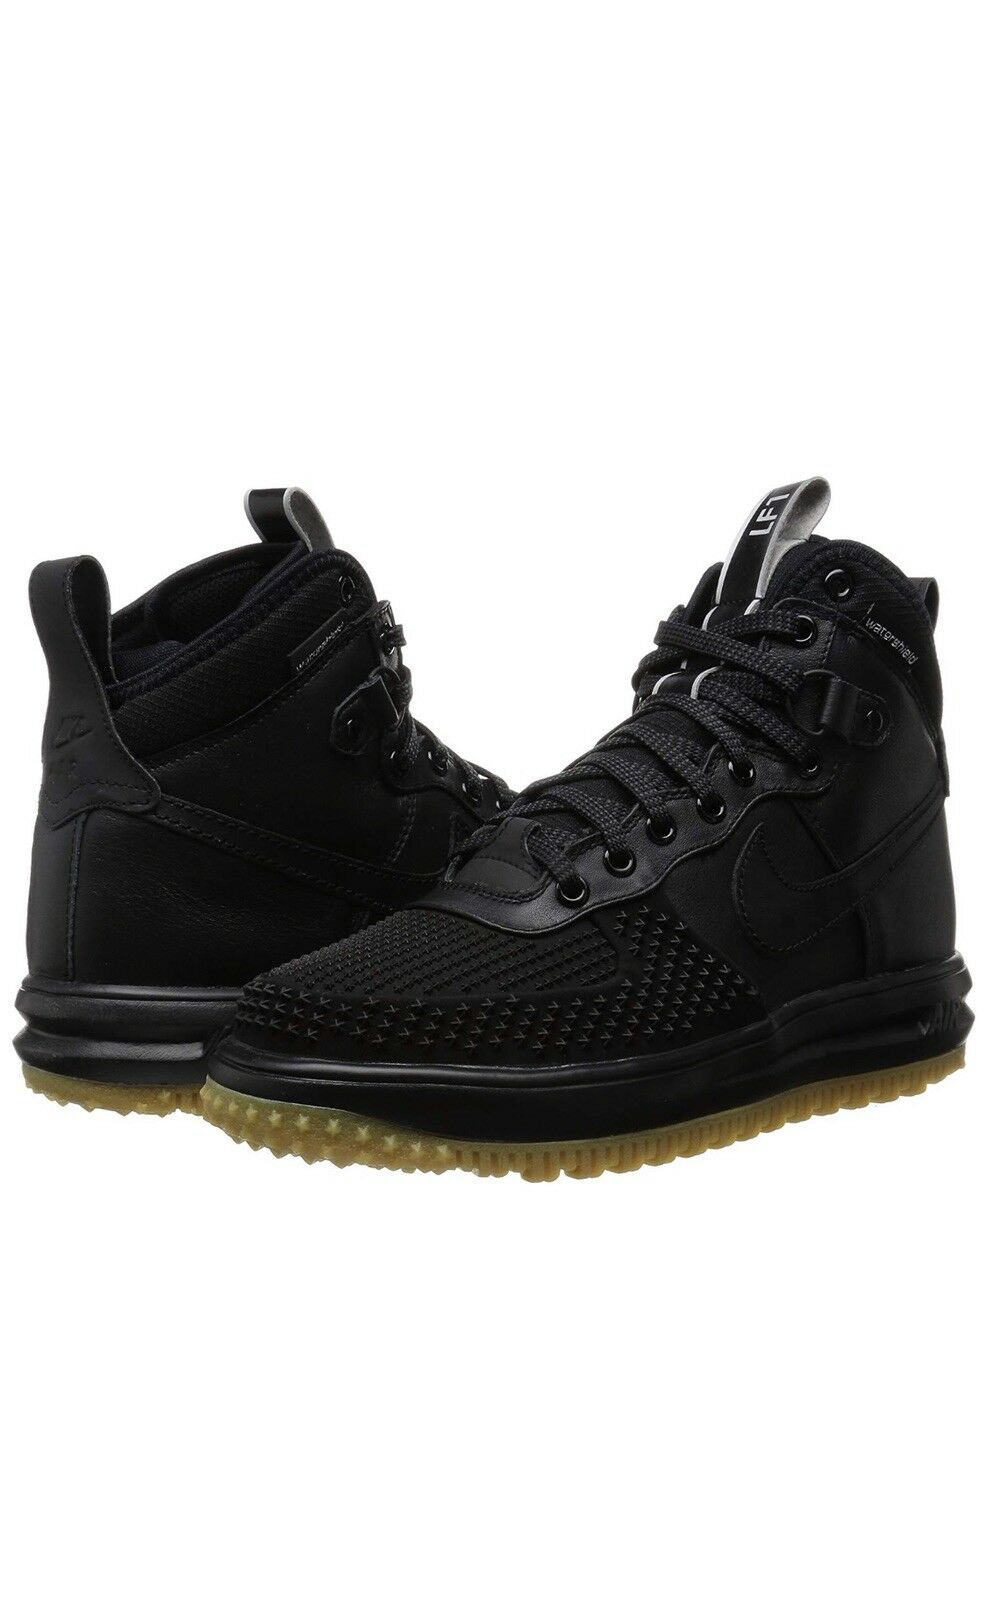 Nike lunar Force 1 DuckBoots